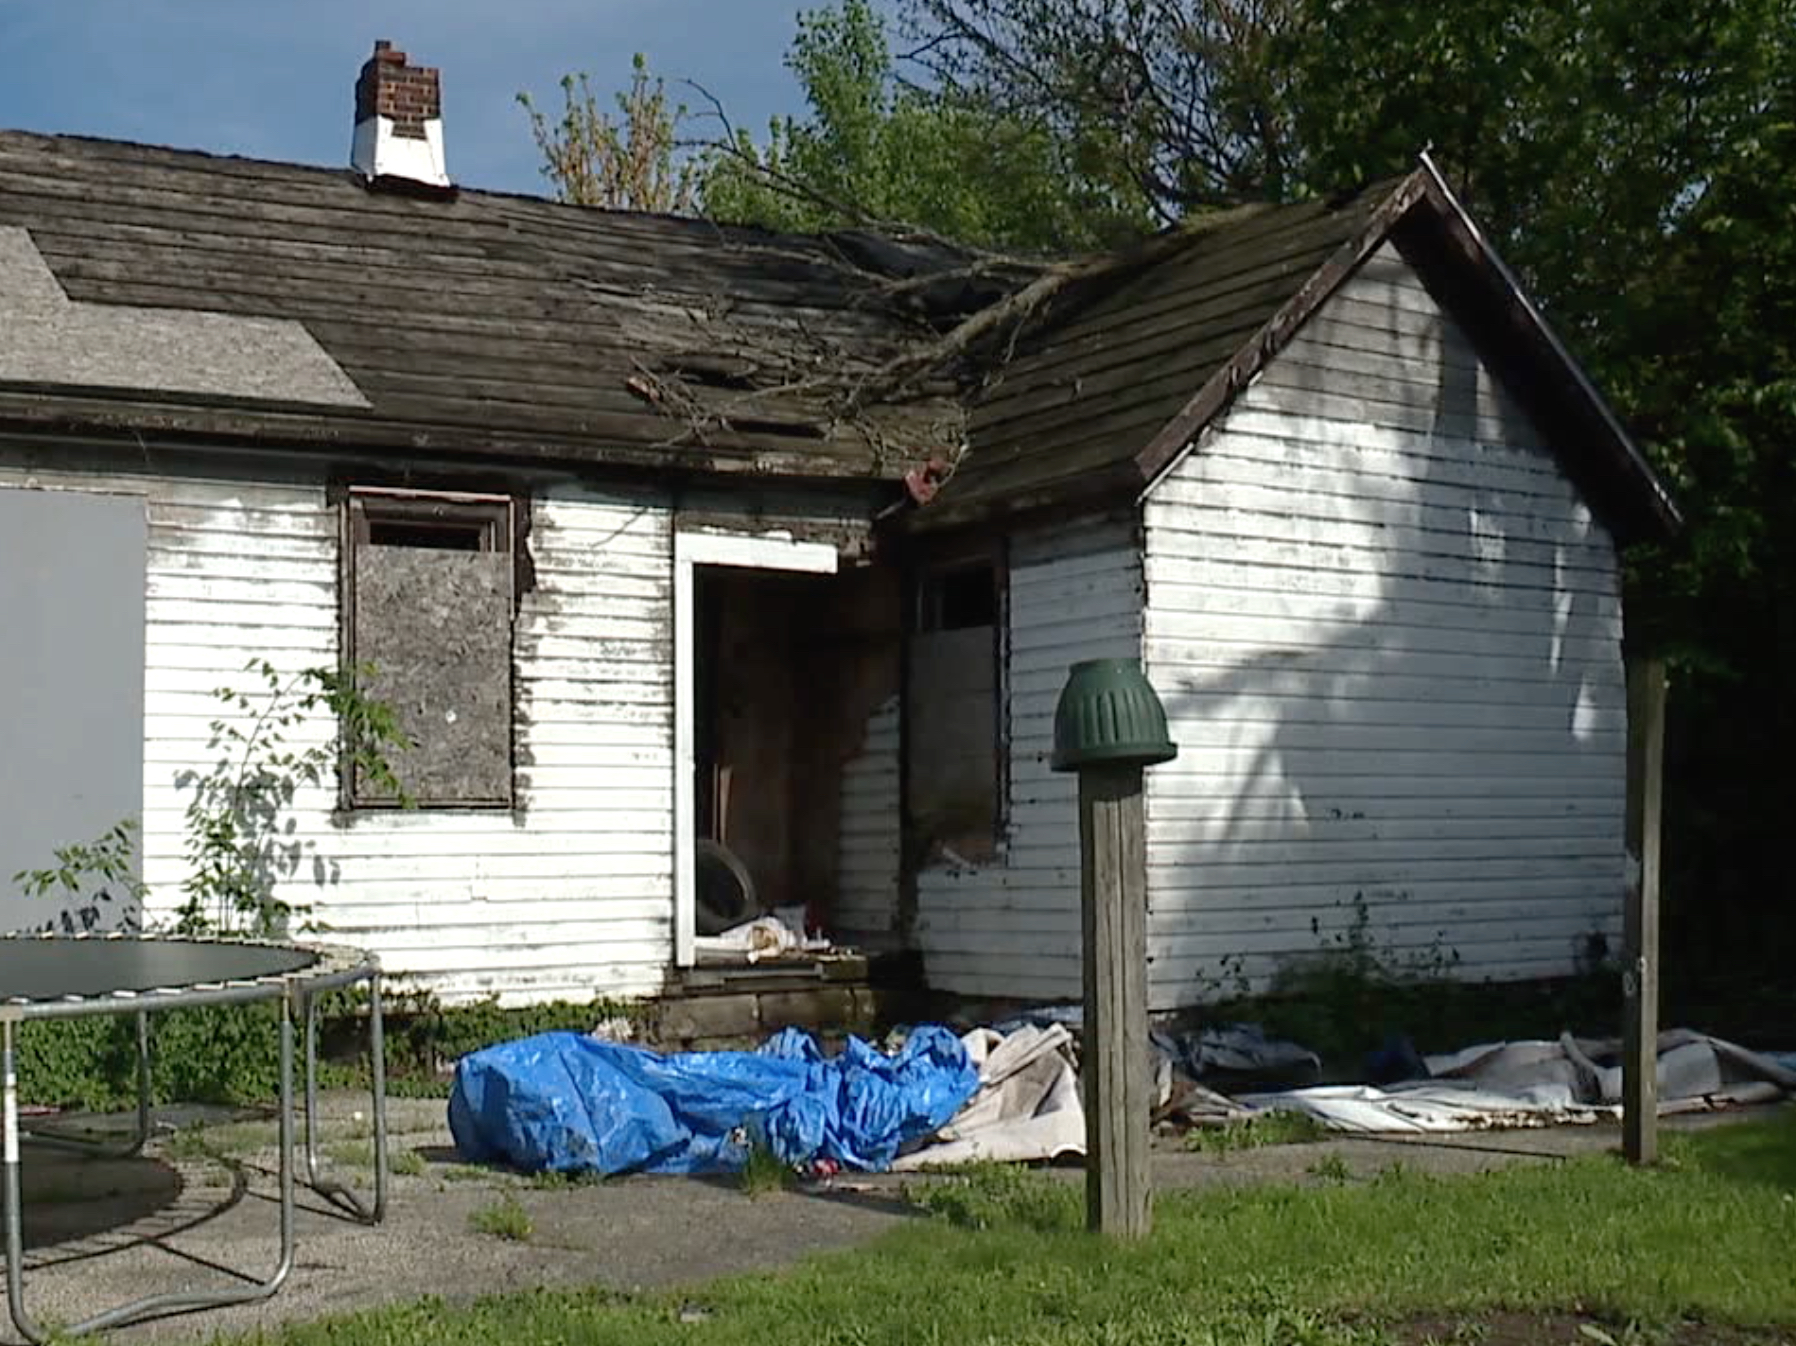 Cleveland tenants exploited by landlords renting condemned homes